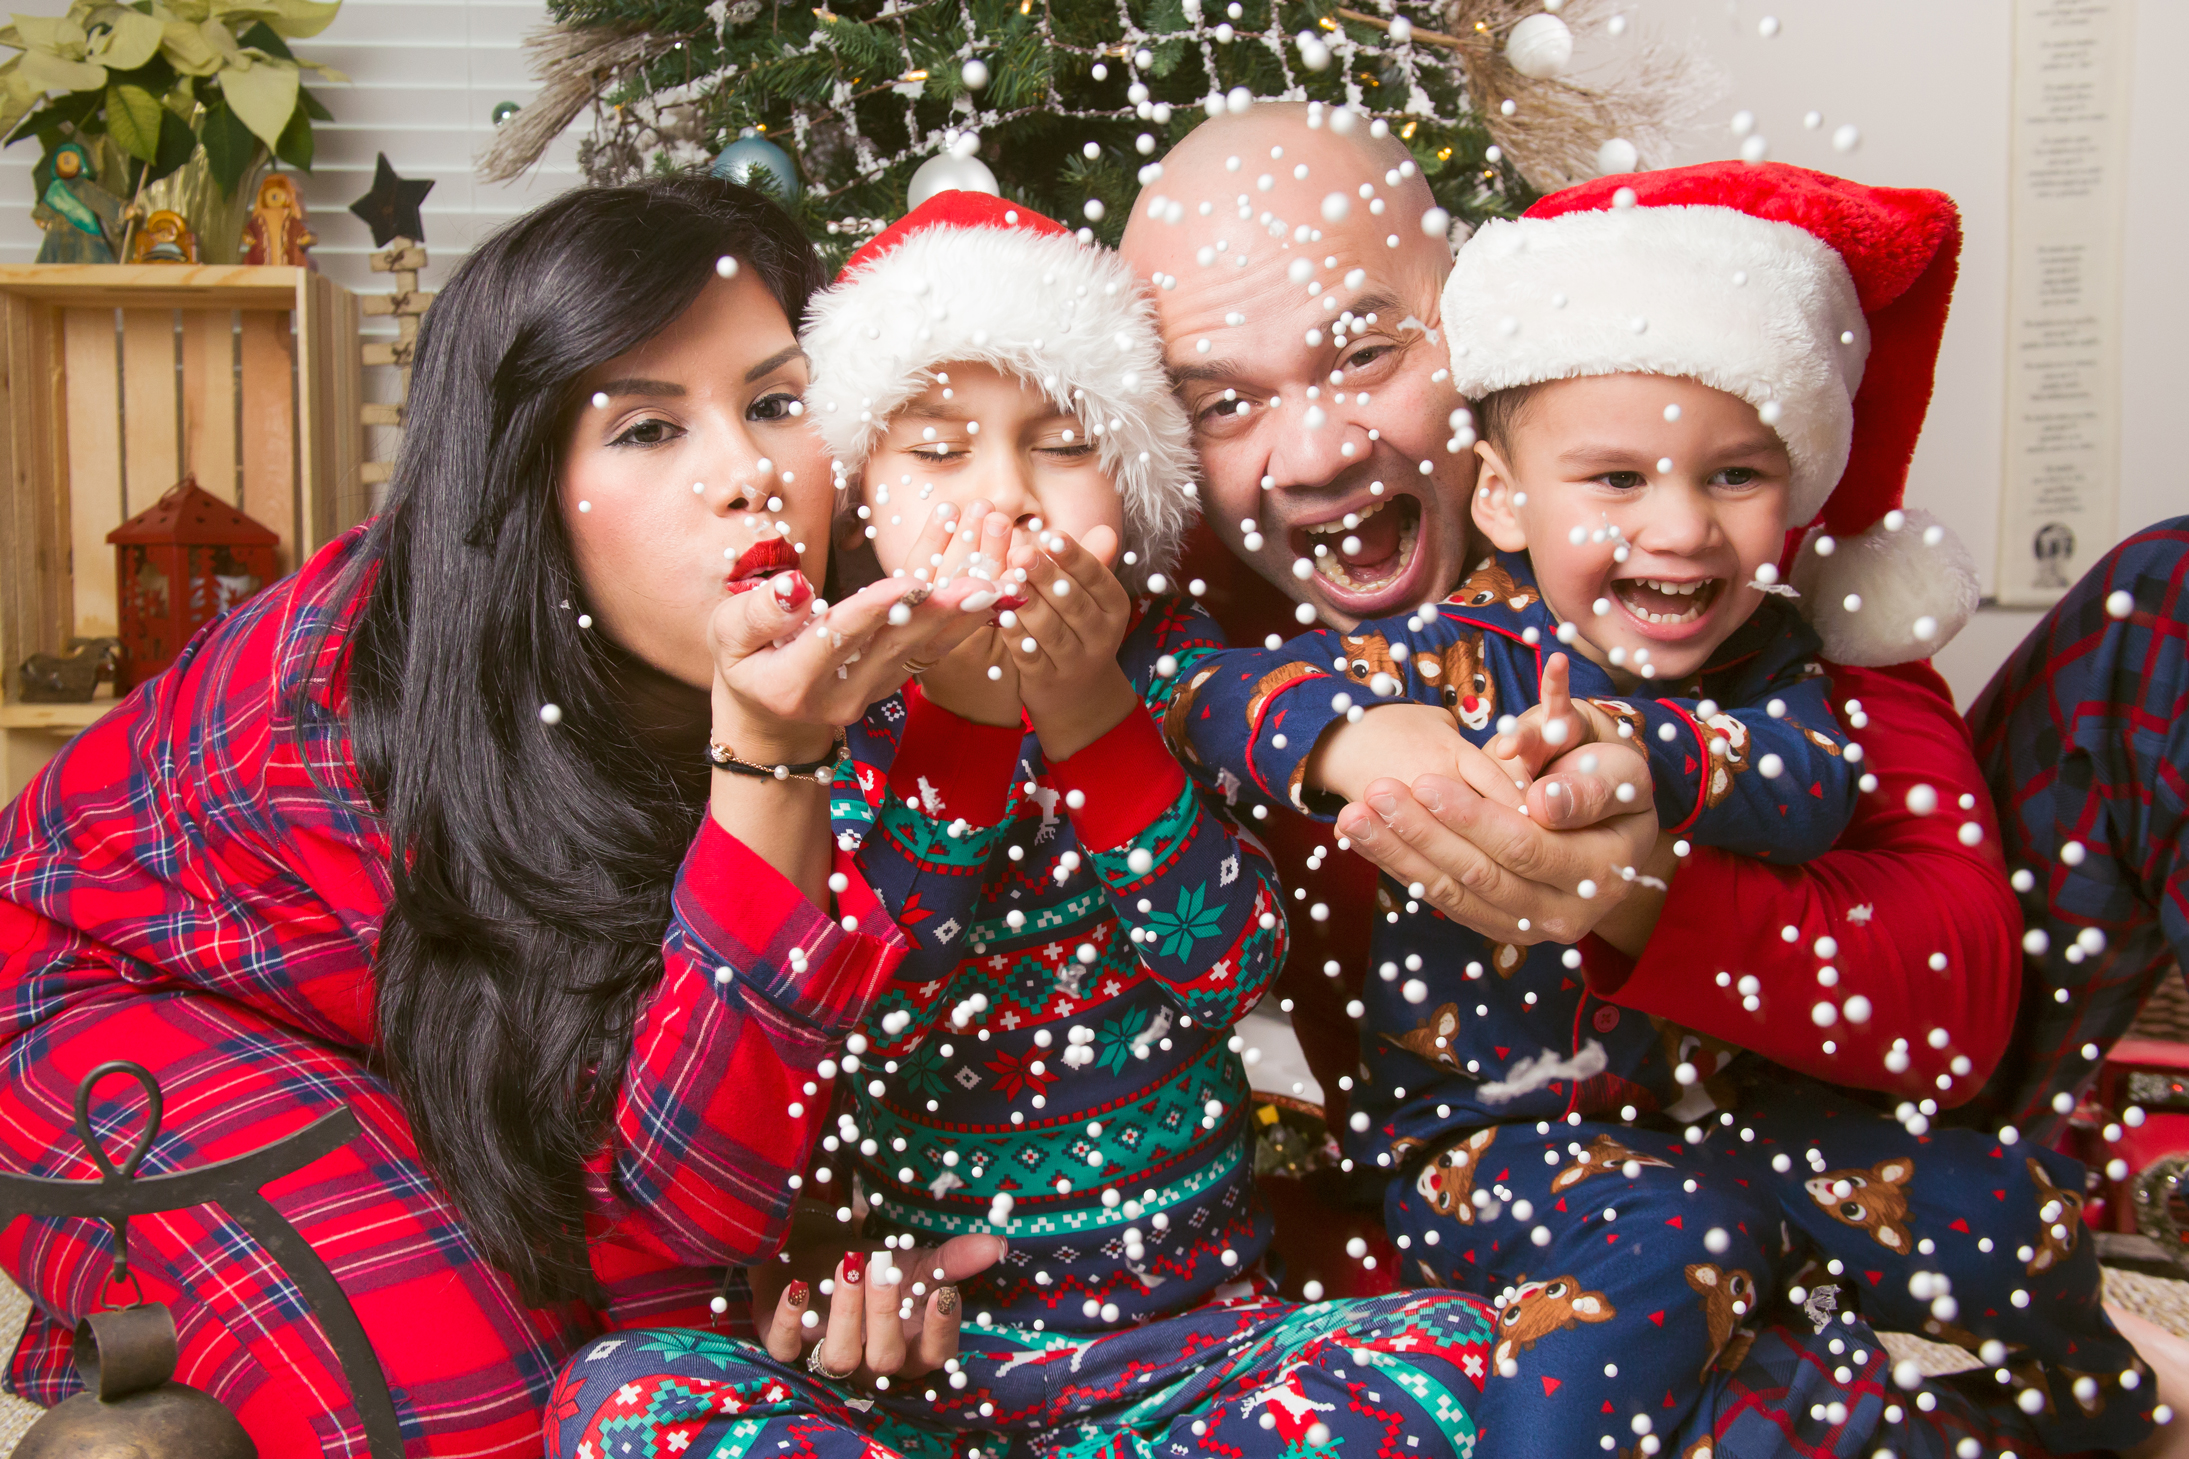 Christmas Family Portraits.Christmas Family Portrait Chamber Photography Moments